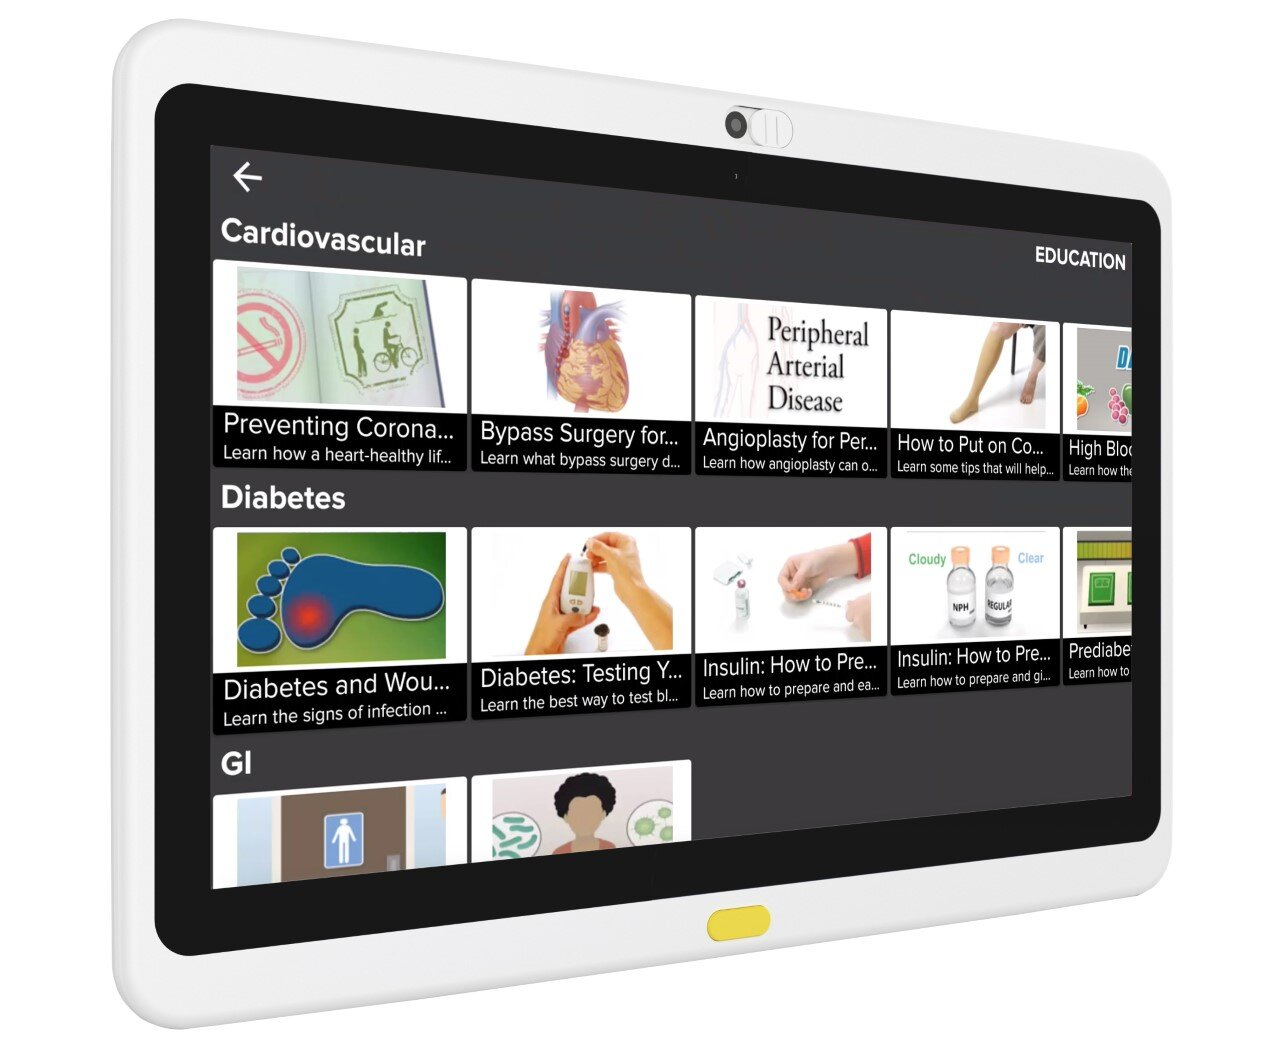 integrated technology, senior care, interactive tablet, bedside tablets, digital whiteboards, HCI advantage, HCI blog, Beside Tablet, Hospital tablet, SmartScreen, temperature screening, temperature detection, infection control, hospital temperature screening, COVID, coronavirus, Concierge Tablet, long term are tablet, interactive hospital tablet, hospital tablet, MediaCare, HCI, interactive patient whiteboard, digital patient whiteboard, electronic patient whiteboard, patient room whiteboard, patient room digital whiteboard, patient room digital signage, hospital digital signage, hospital wayfinding, hospital signage, hospital patient room electronic whiteboard, hospital digital whiteboard, patient room interactive whiteboard, hospital unit monitoring, hospital unit whiteboard, patient engagement whiteboard, patient education whiteboard, hospital whiteboard, hospital tv, patient tv, hospital interactive tv, HCI tv, senior care, long term care, hospital telemedicine, telemedicine, hospital communication, hospital signage, patient safety, patient education, patient engagement, patient entertainment, hospital keyboard, hospital infection control, HCAHPS, patient survey, patient satisfaction, hospital dry erase board, hospital communication board, elder care, senior care, assisted living, retirement living, hospital workflow, hospital scheduling, hospital data, hospital data management, hospital apps, hospital entertainment, hospital service, careapps, hospital apps, patient television systems, interactive in-room tv, interactive patient tv, hospital tv systems, interactive in-room patient tv, bedside tv, hospital grade tv, patient tv usage, interactive whiteboard usage, hospital whiteboard usage, digital hospital whiteboard usage, electronic hospital whiteboard usage, healthcare tv, healthcare whiteboard, hospital tv solutions, hospital whiteboard solutions, interactive patient care, interactive patient care solutions, patient care technology, hospital digital display, hospital EHR, hospital EMR, hospital RTLS, hospital Nurse Call, interactive televisions, hospital tv monitor, interactive patient engagement solution, interactive patient software, smart tv, hospital smart tv, interactive patient engagement technology, hospital games, hospital movies, interactive hospital movies, hospital display solutions, Workstation cart, mobile cart, hospital cart